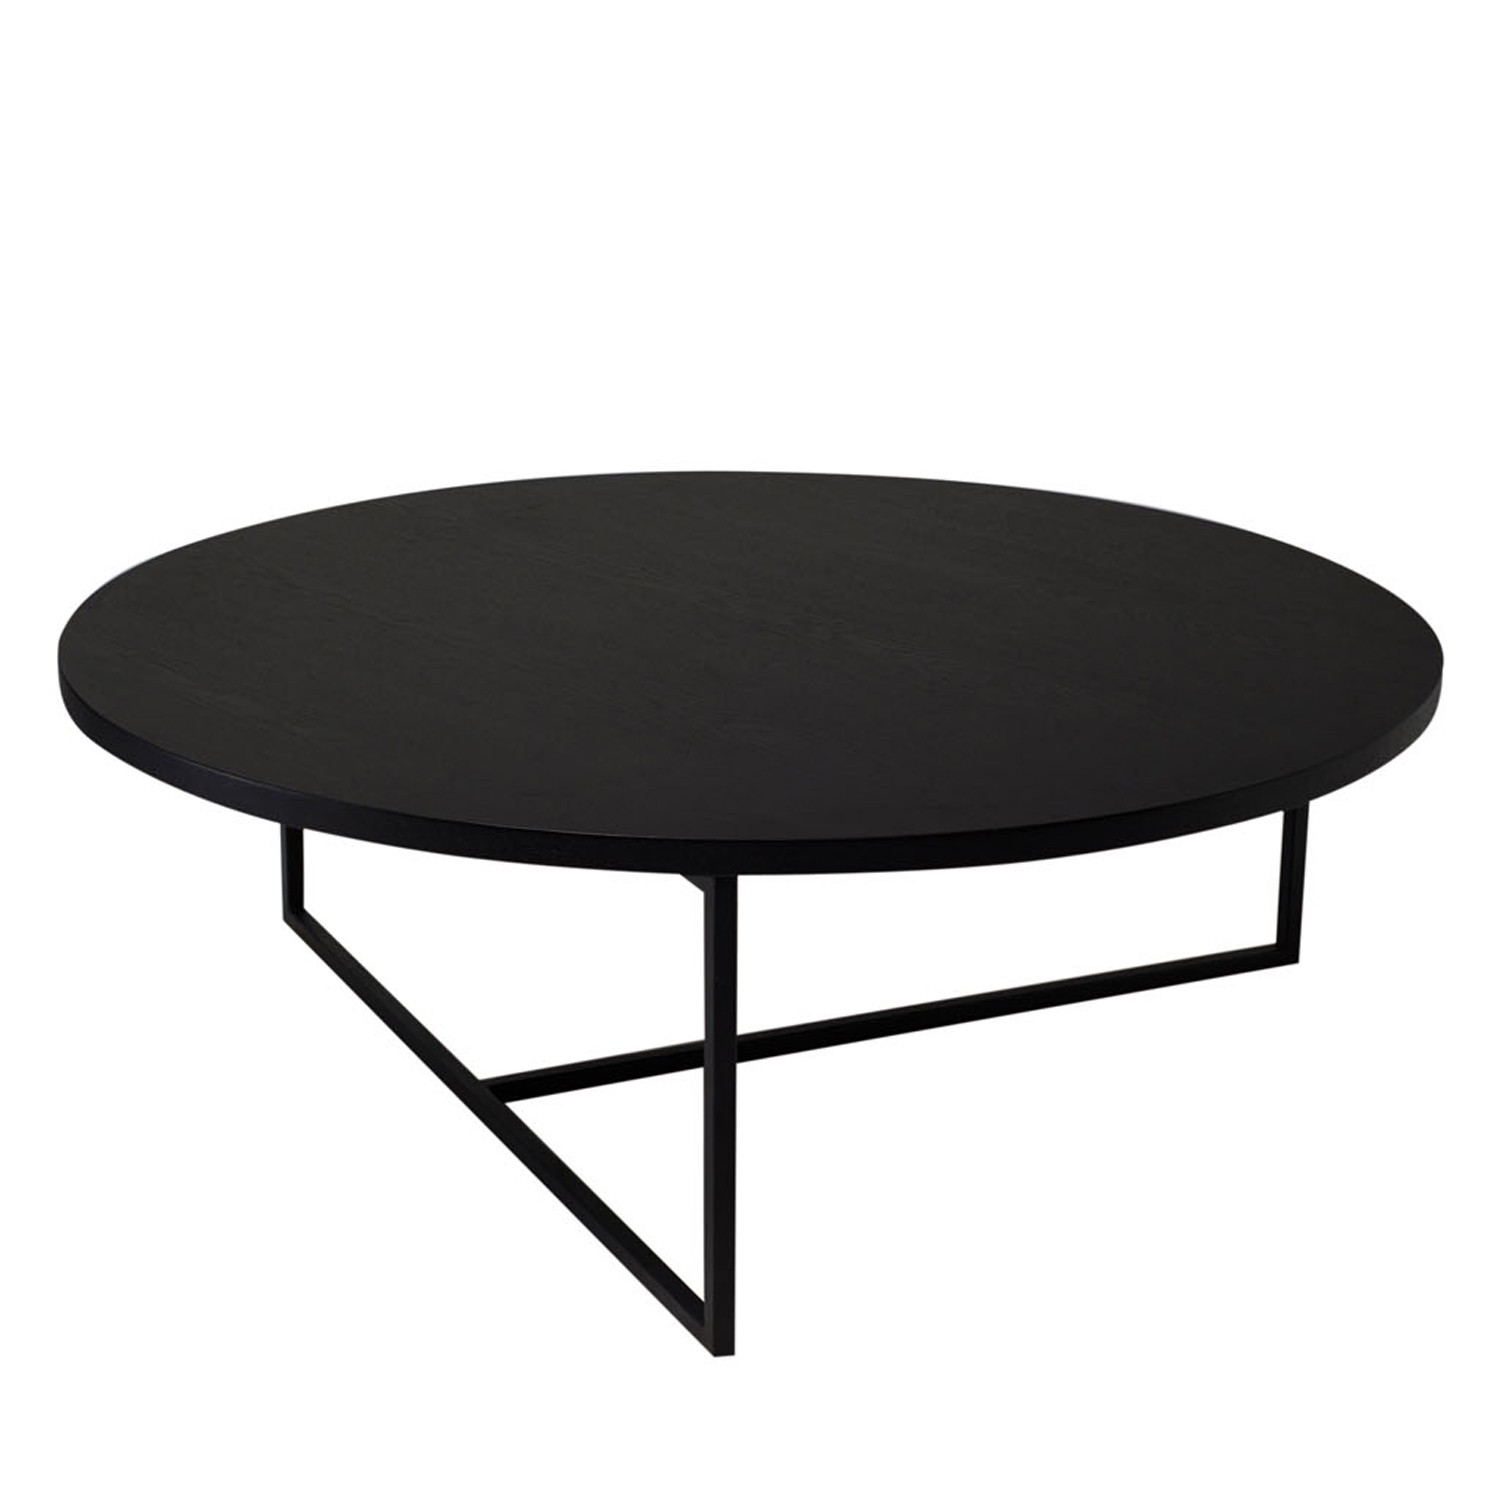 Black Round Coffee Tables Dolf Round Coffee Table Black Ash Sofa Table Round Coffee Table Amazon Black Round End Tables (Image 3 of 10)